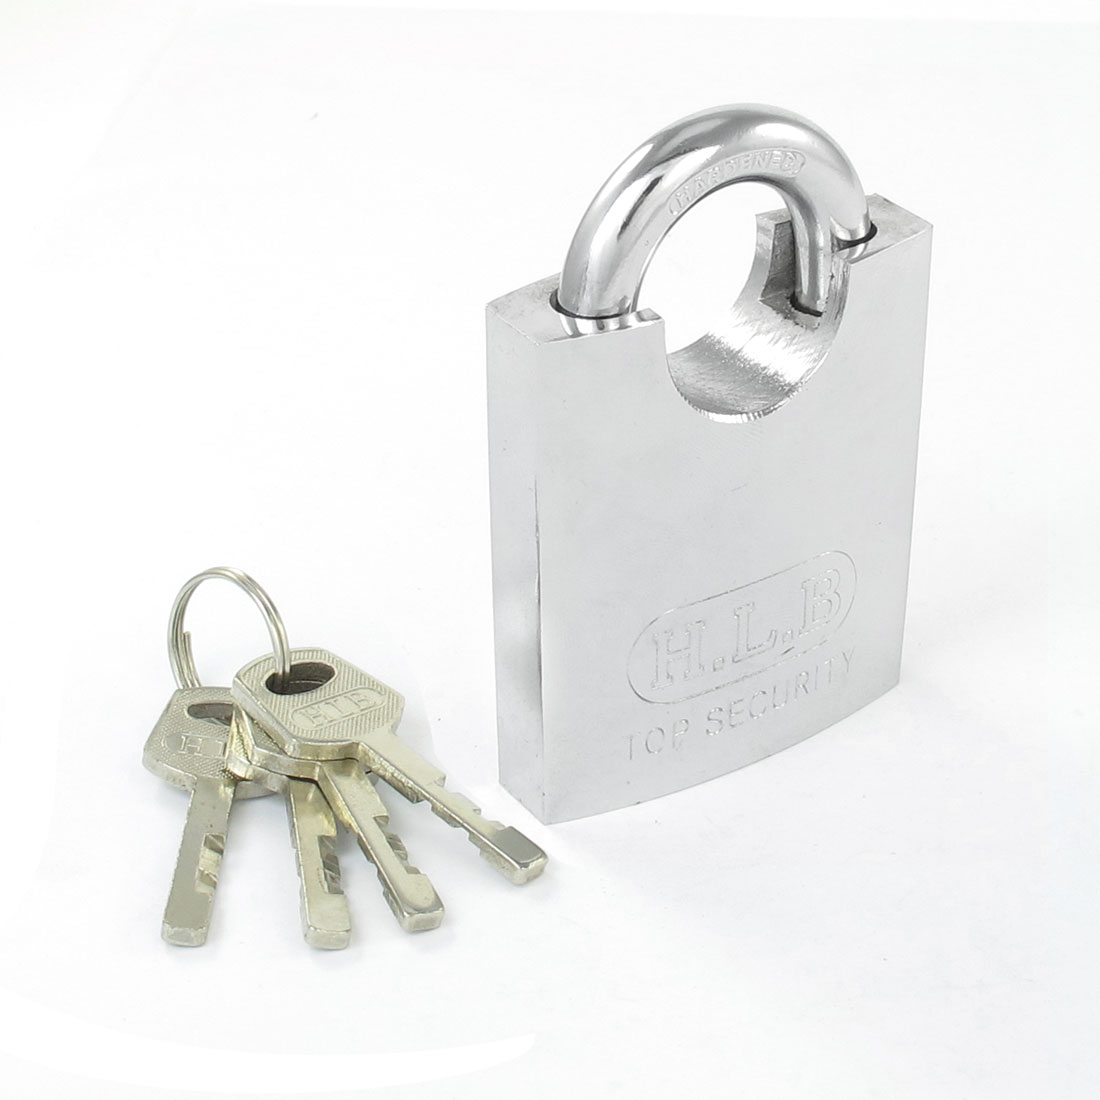 Home Shop Stainless Steel Full Wrapped Shackle Security Padlock 9cm w 4 Keys